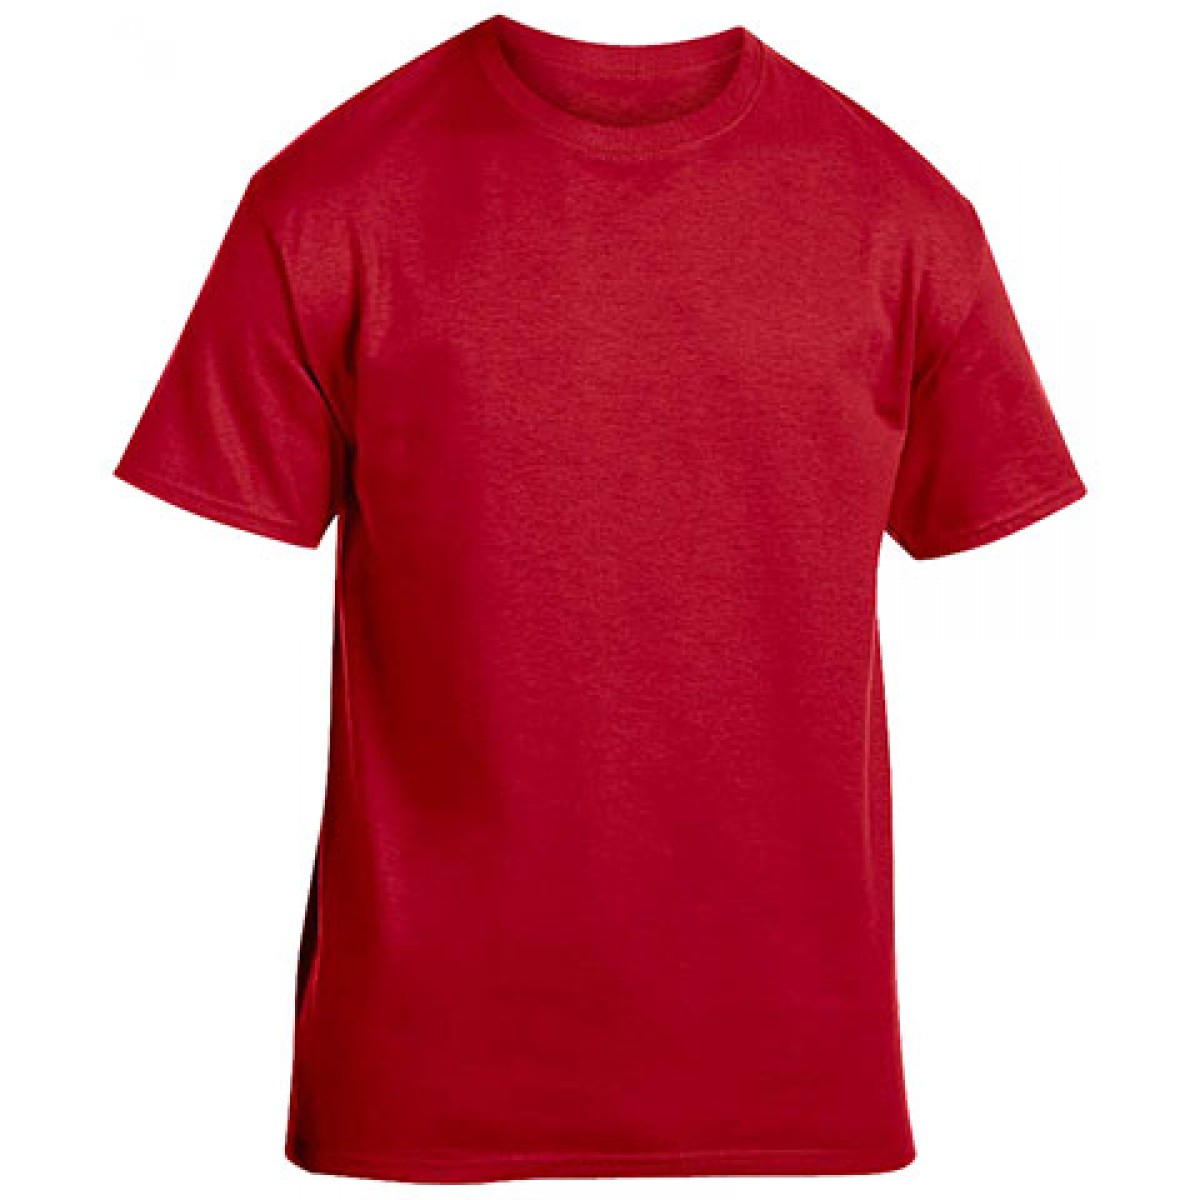 Cotton Short Sleeve T-Shirt-Cardinal Red-S